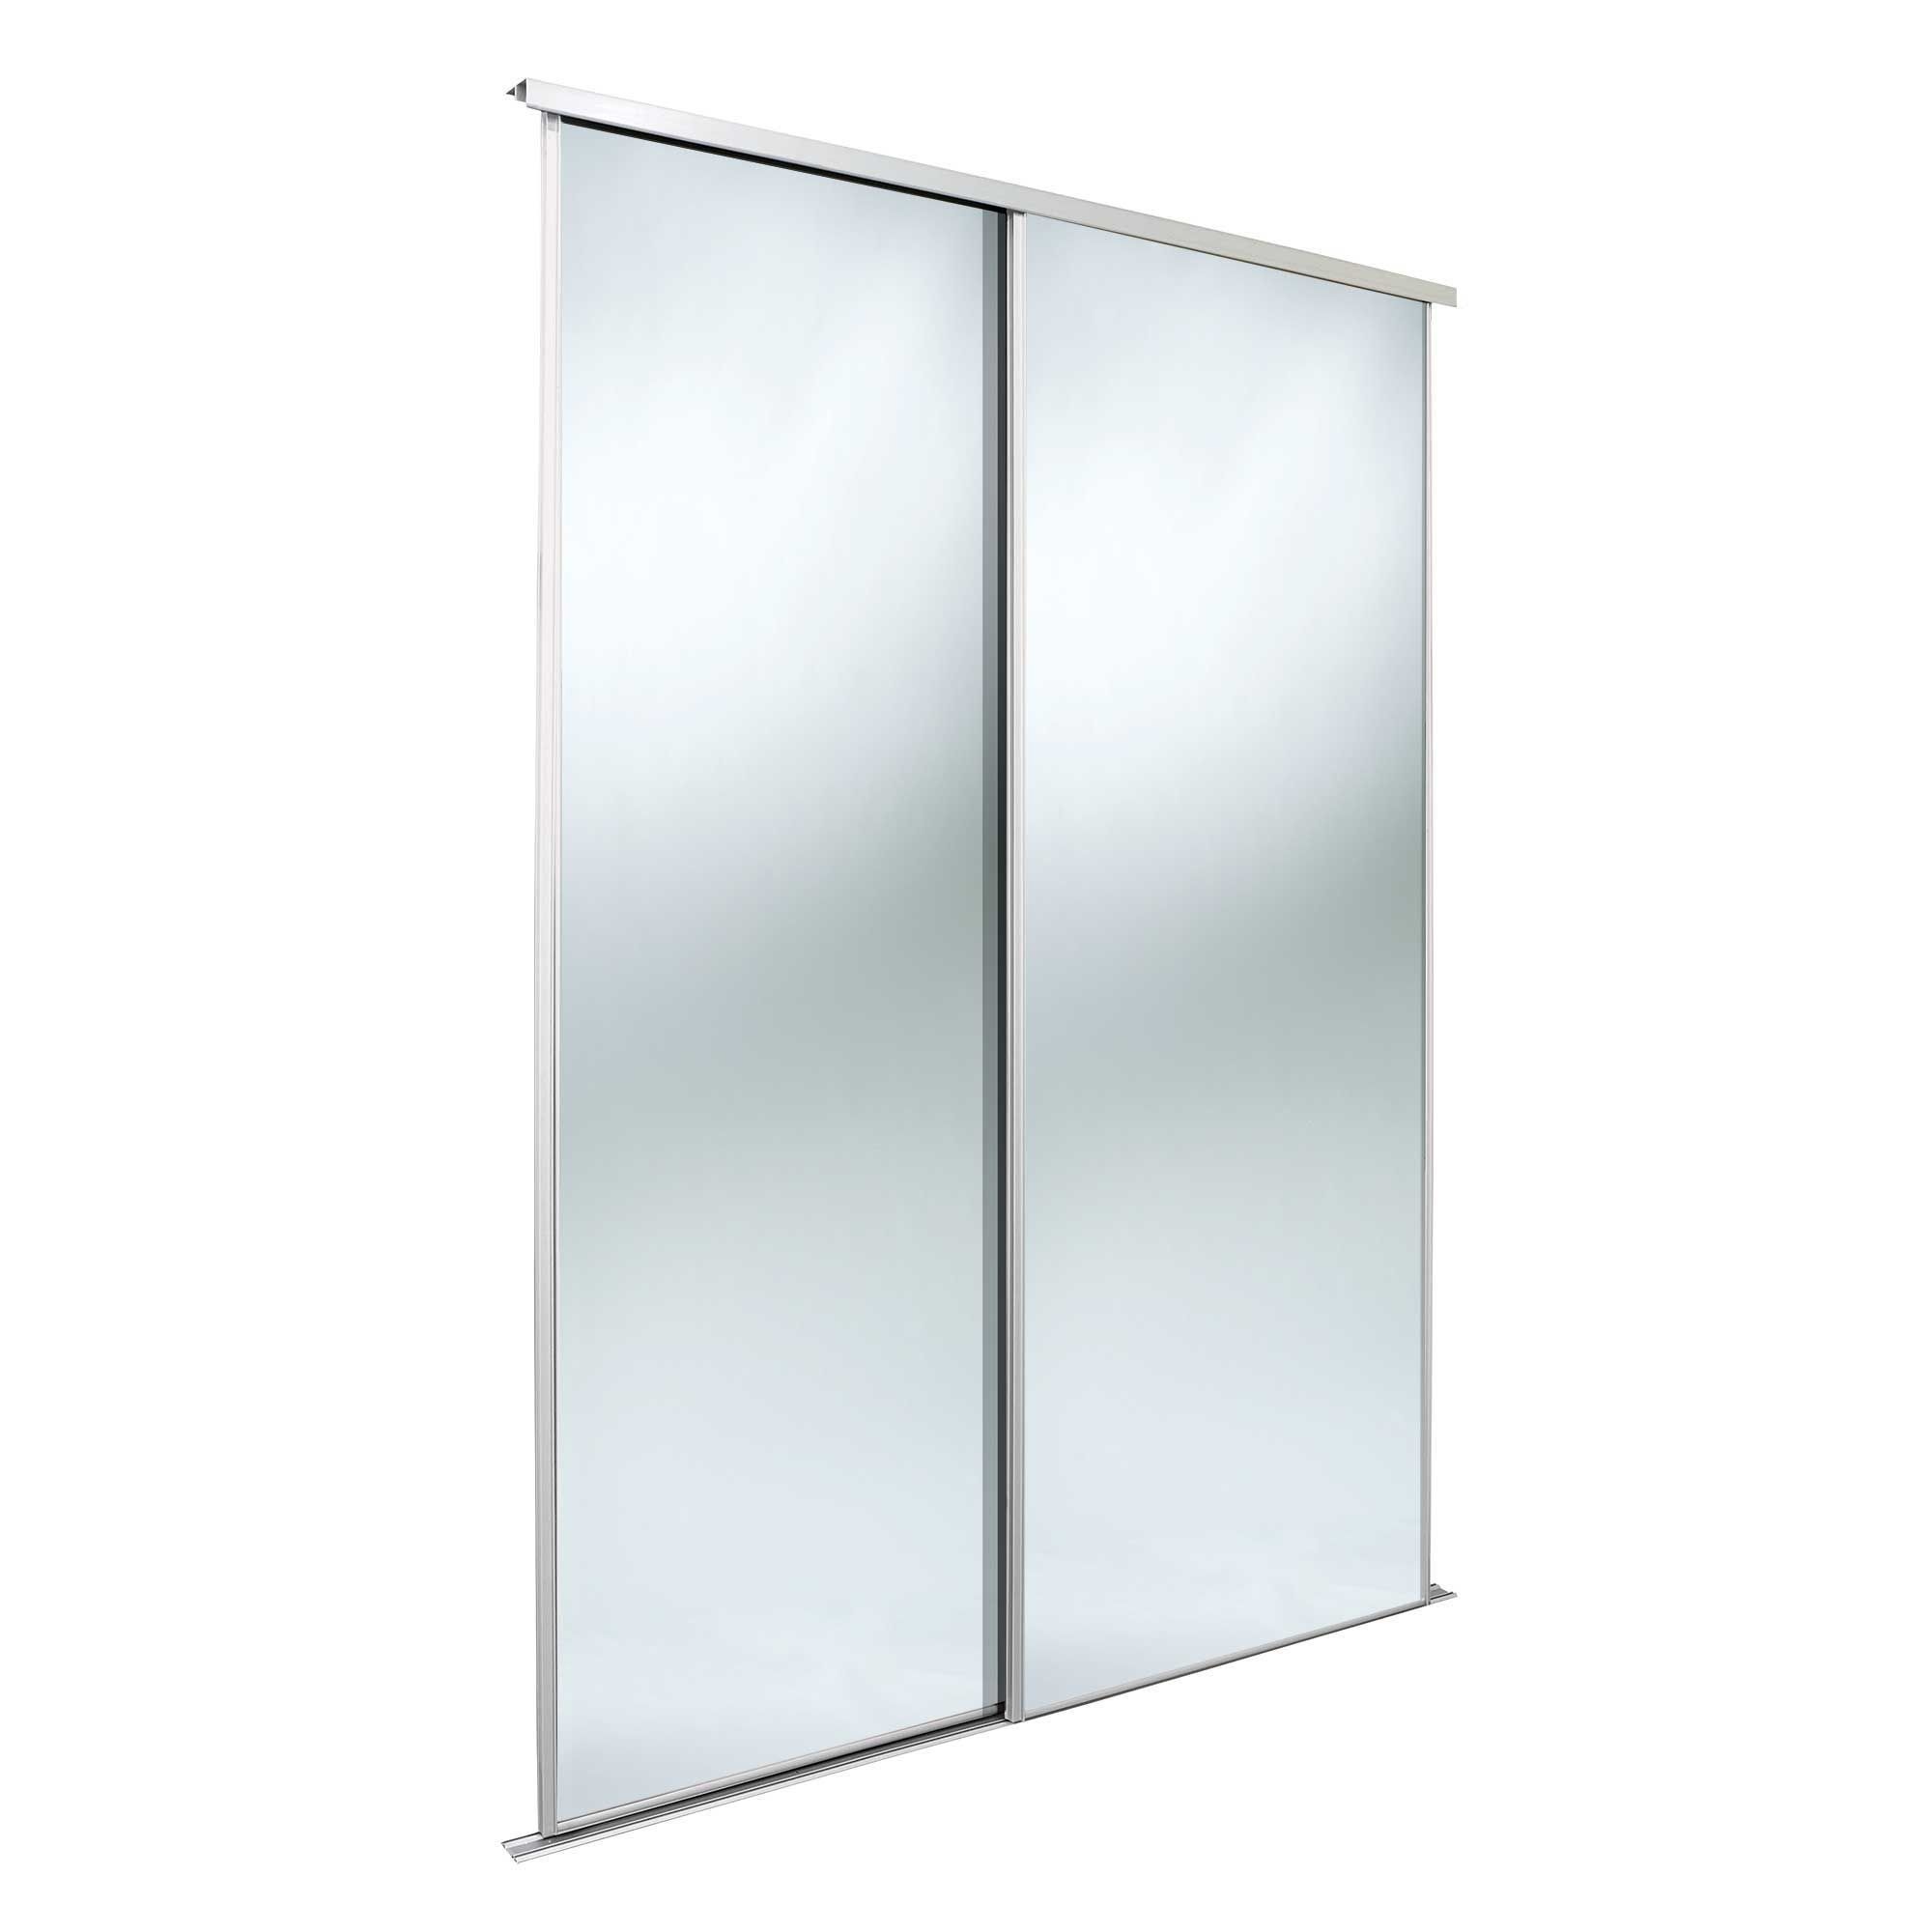 Classic Mirrored White Mirror Effect Sliding Wardrobe Door Kit (h)2220 Mm (w)762 Mm, Pack Of 2